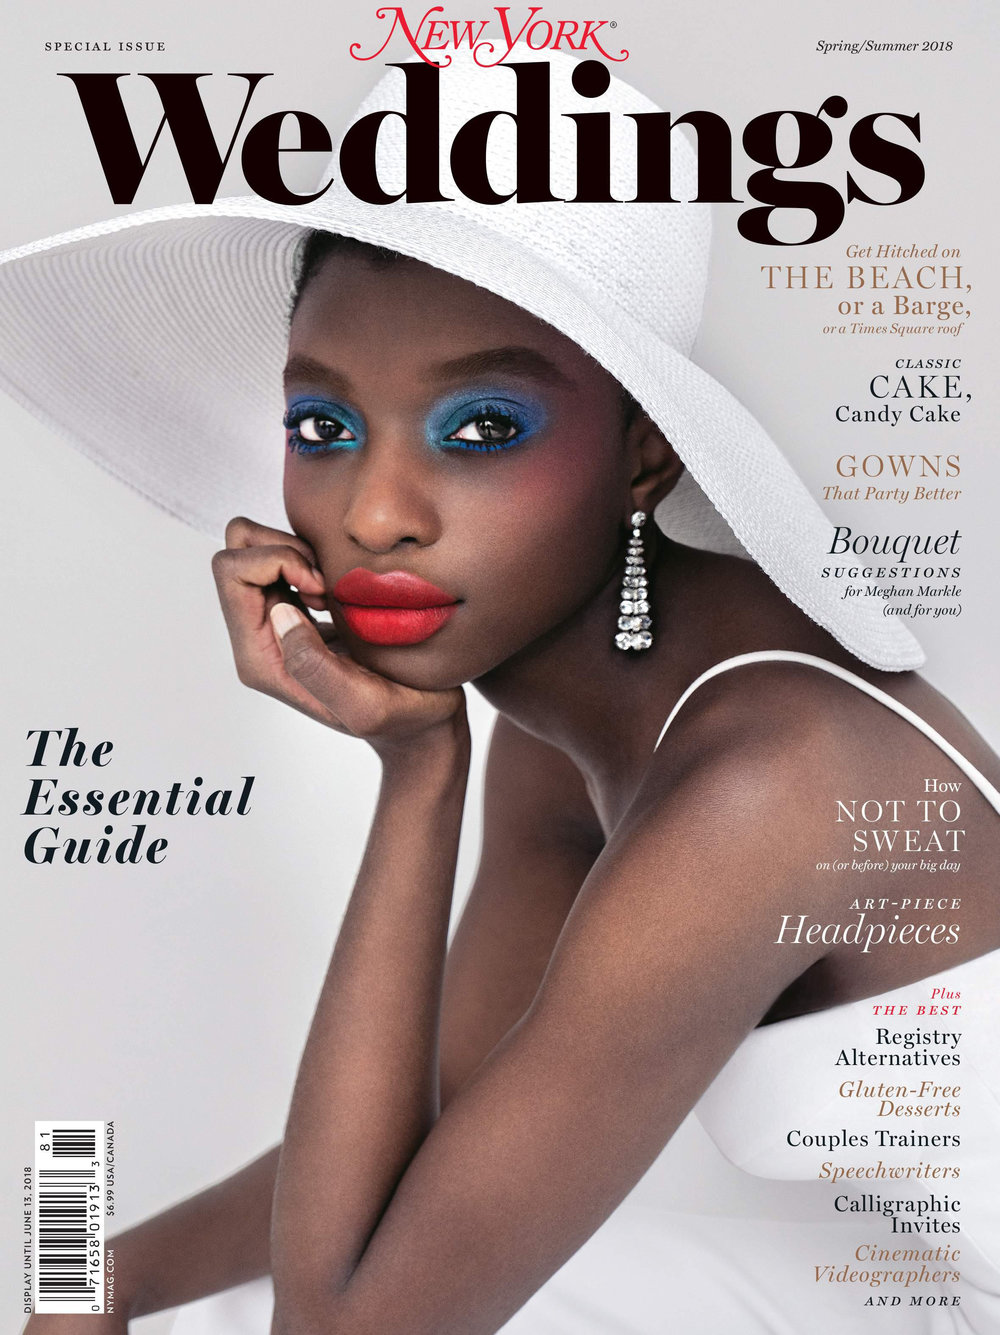 Weddings Cover SS 18.compressed-page-001 REV.jpg